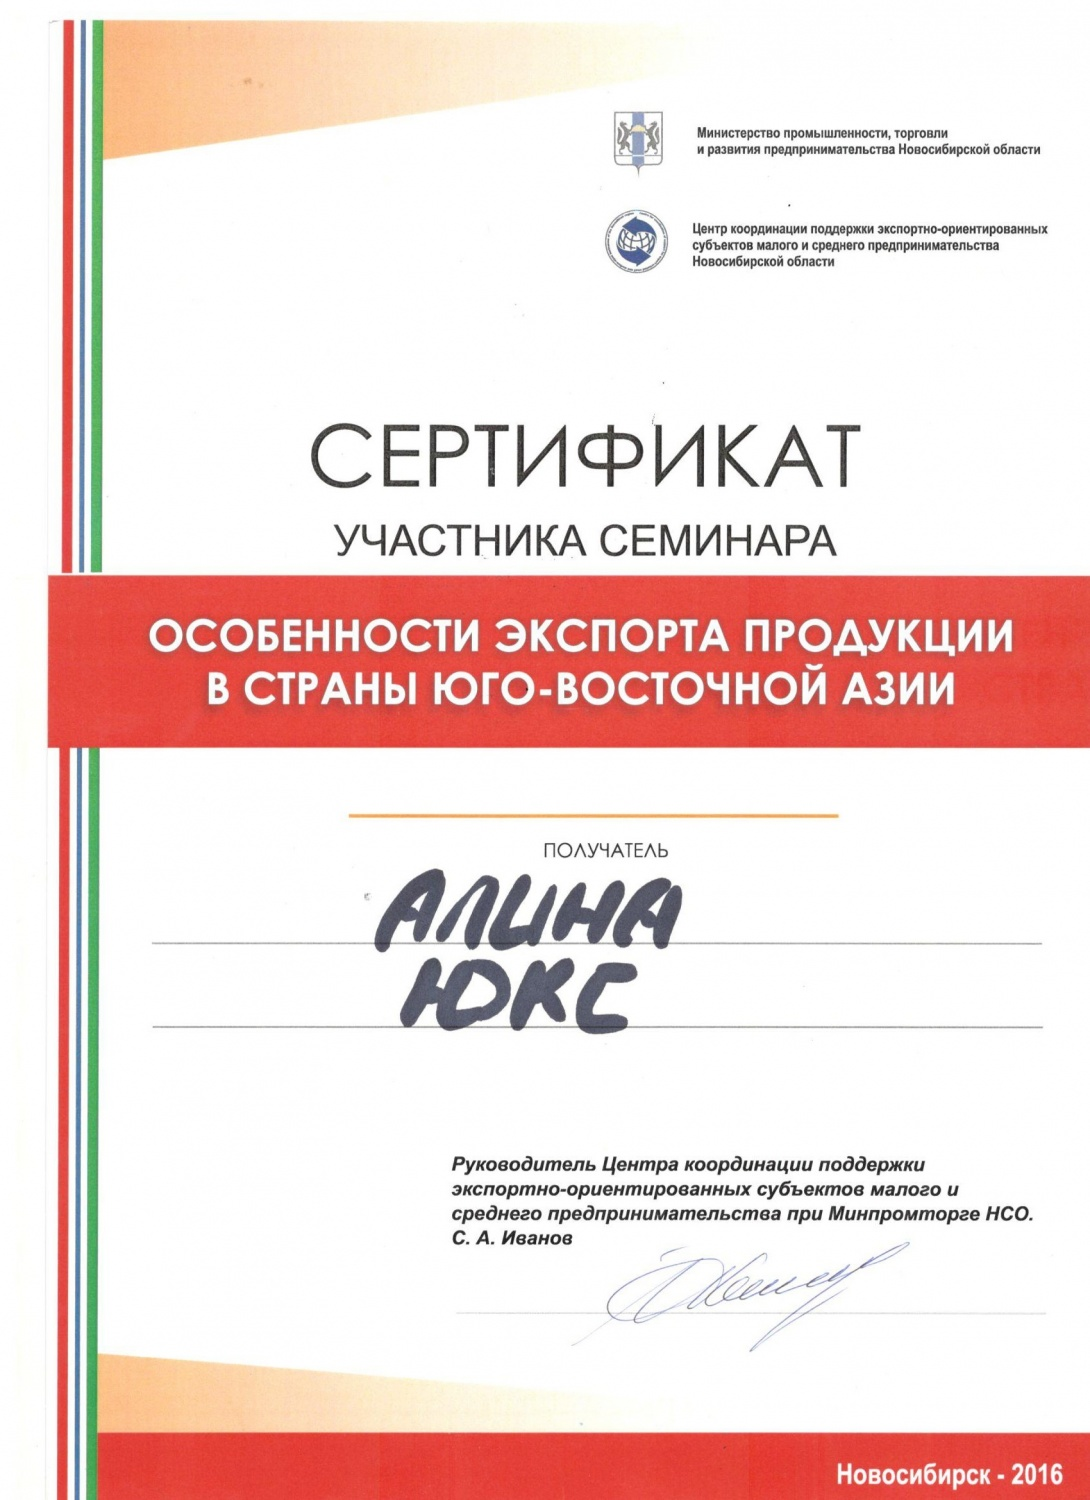 Certificate 'Characteristics of Production Export to the Countries of Southeast Asia'